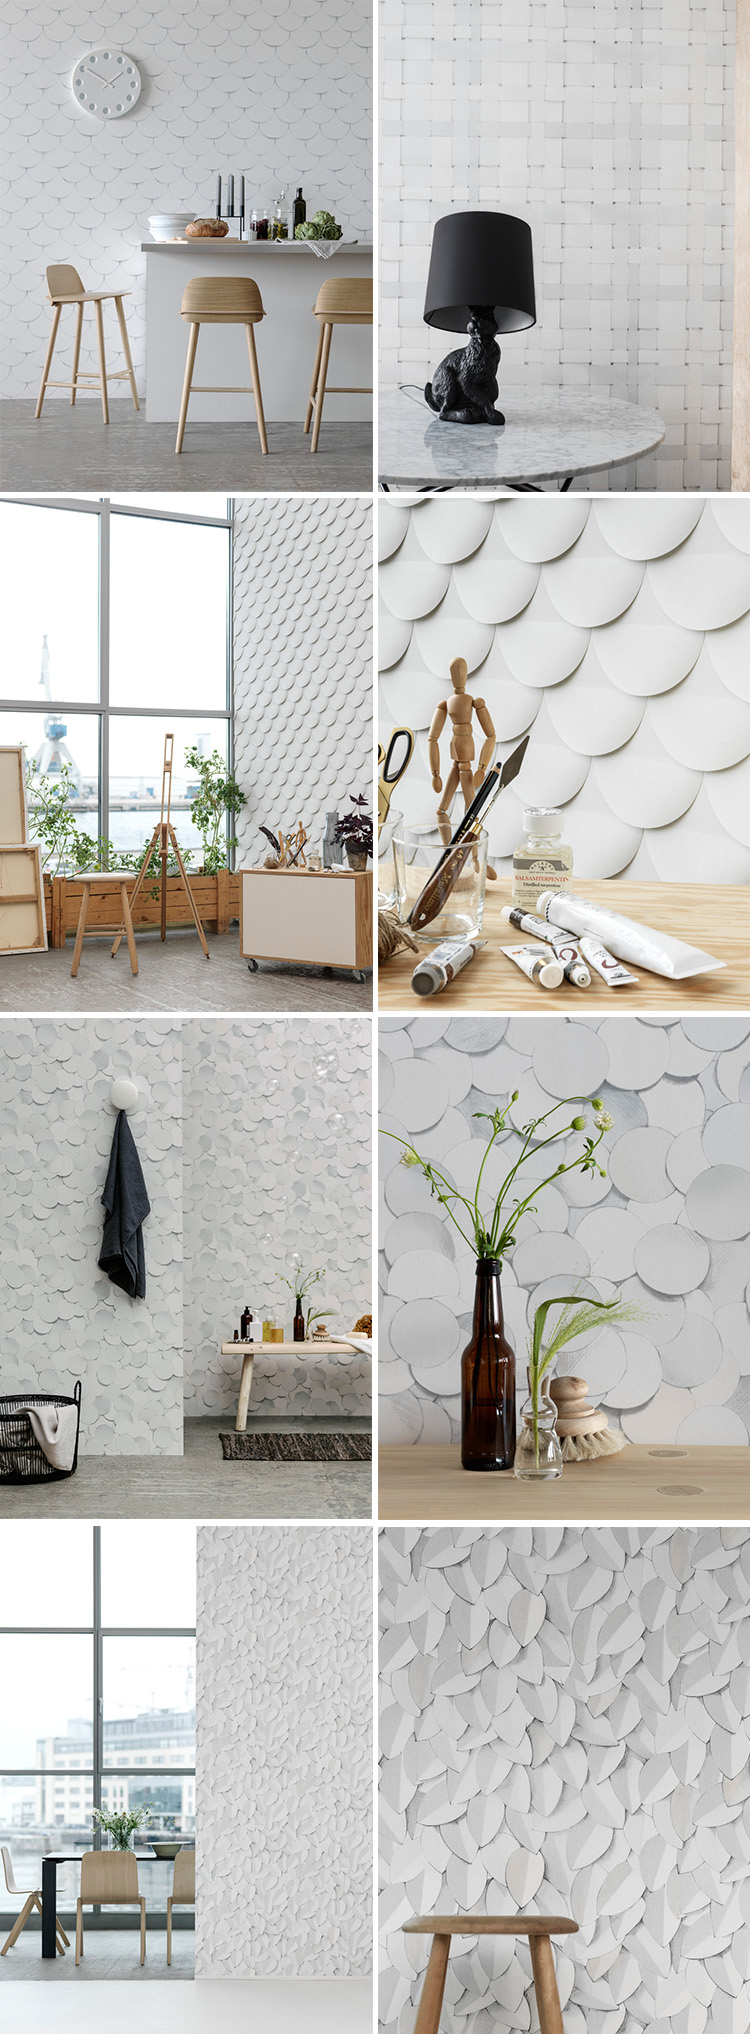 Eco Wallpaper Dots, Weaves, Arces, Cut edge och Leaves.